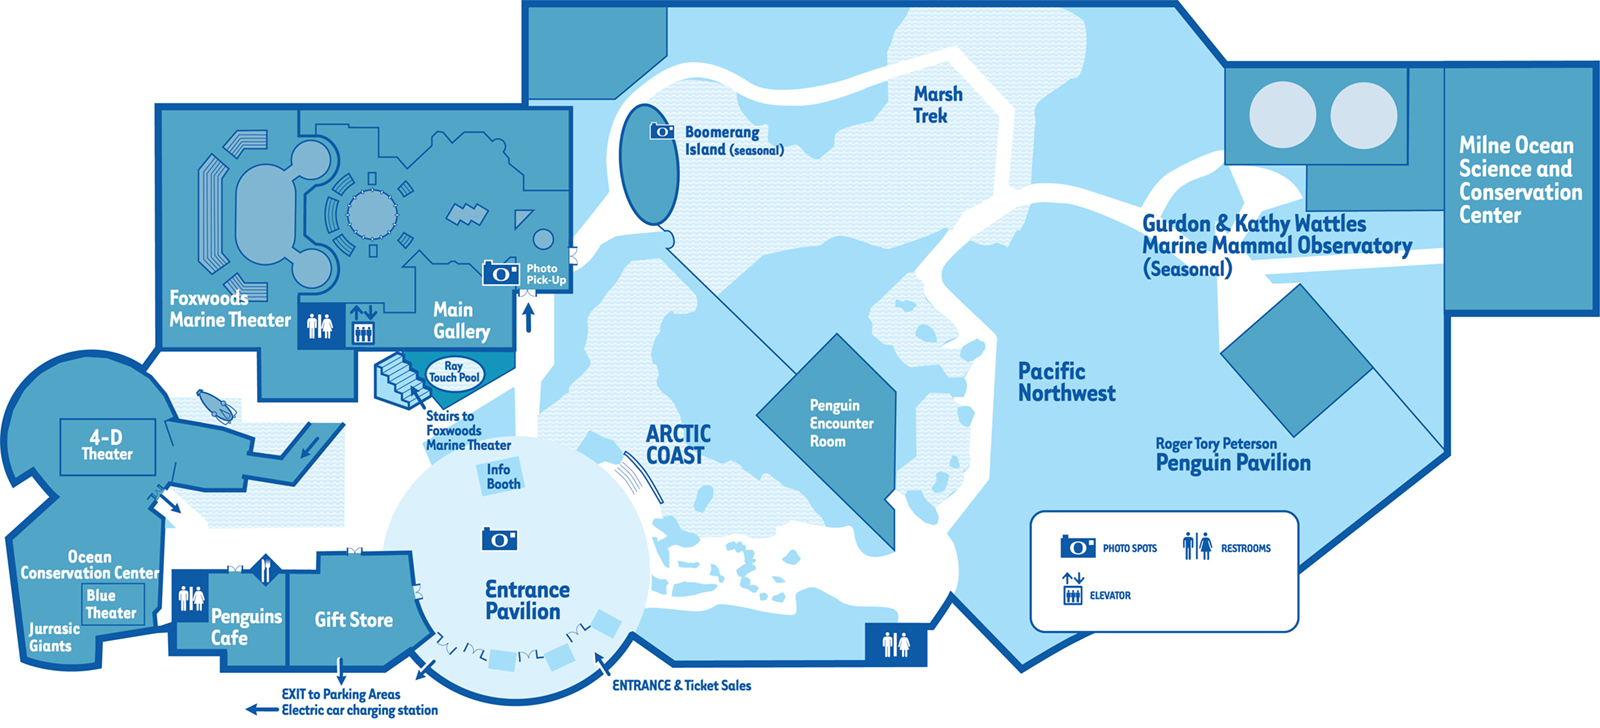 Mystic Aquarium Map